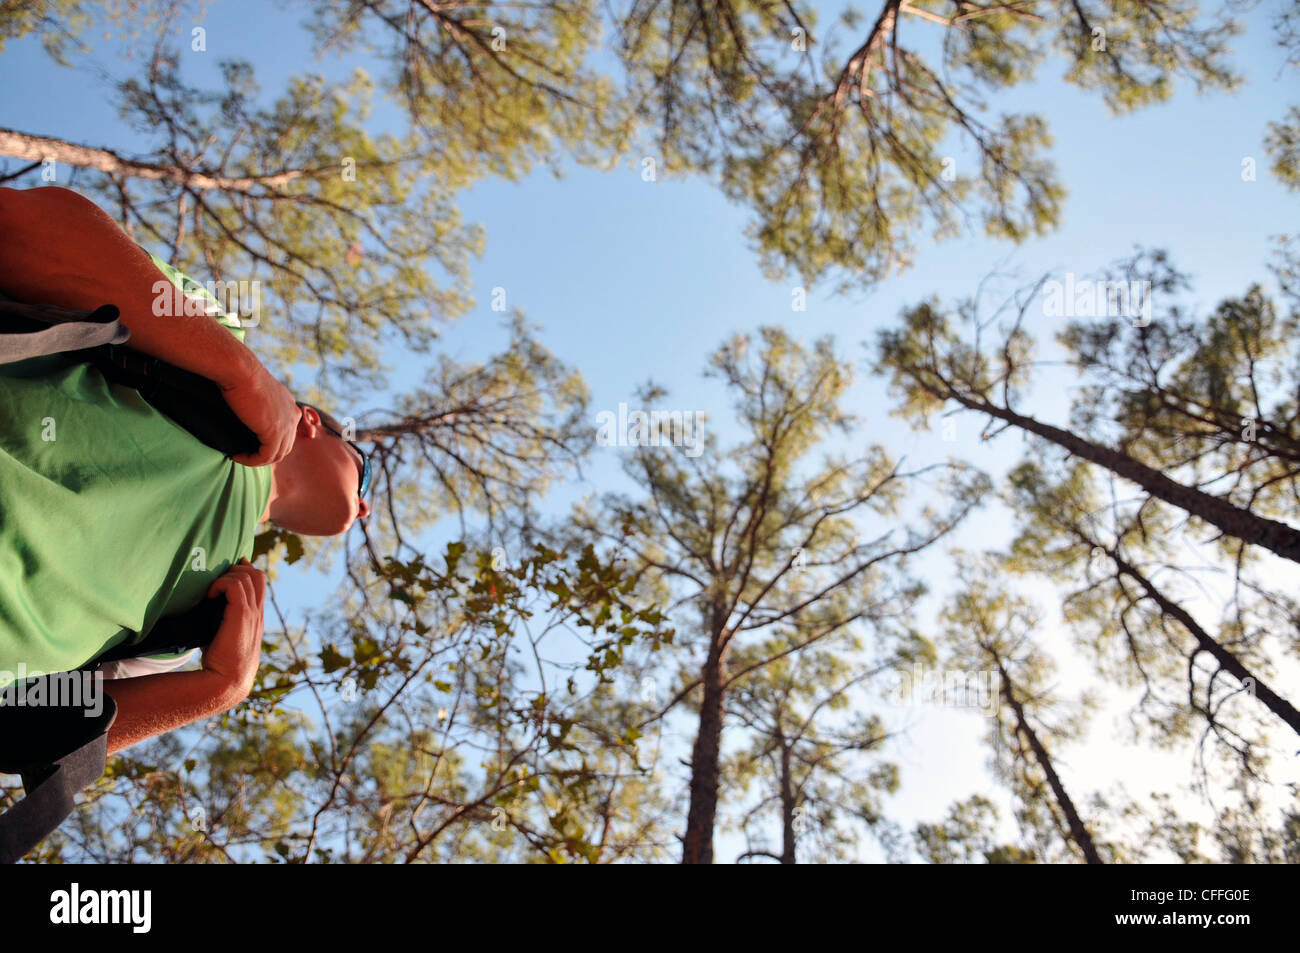 A backpacker stands under the tall pine trees at Bastrop State Park. - Stock Image